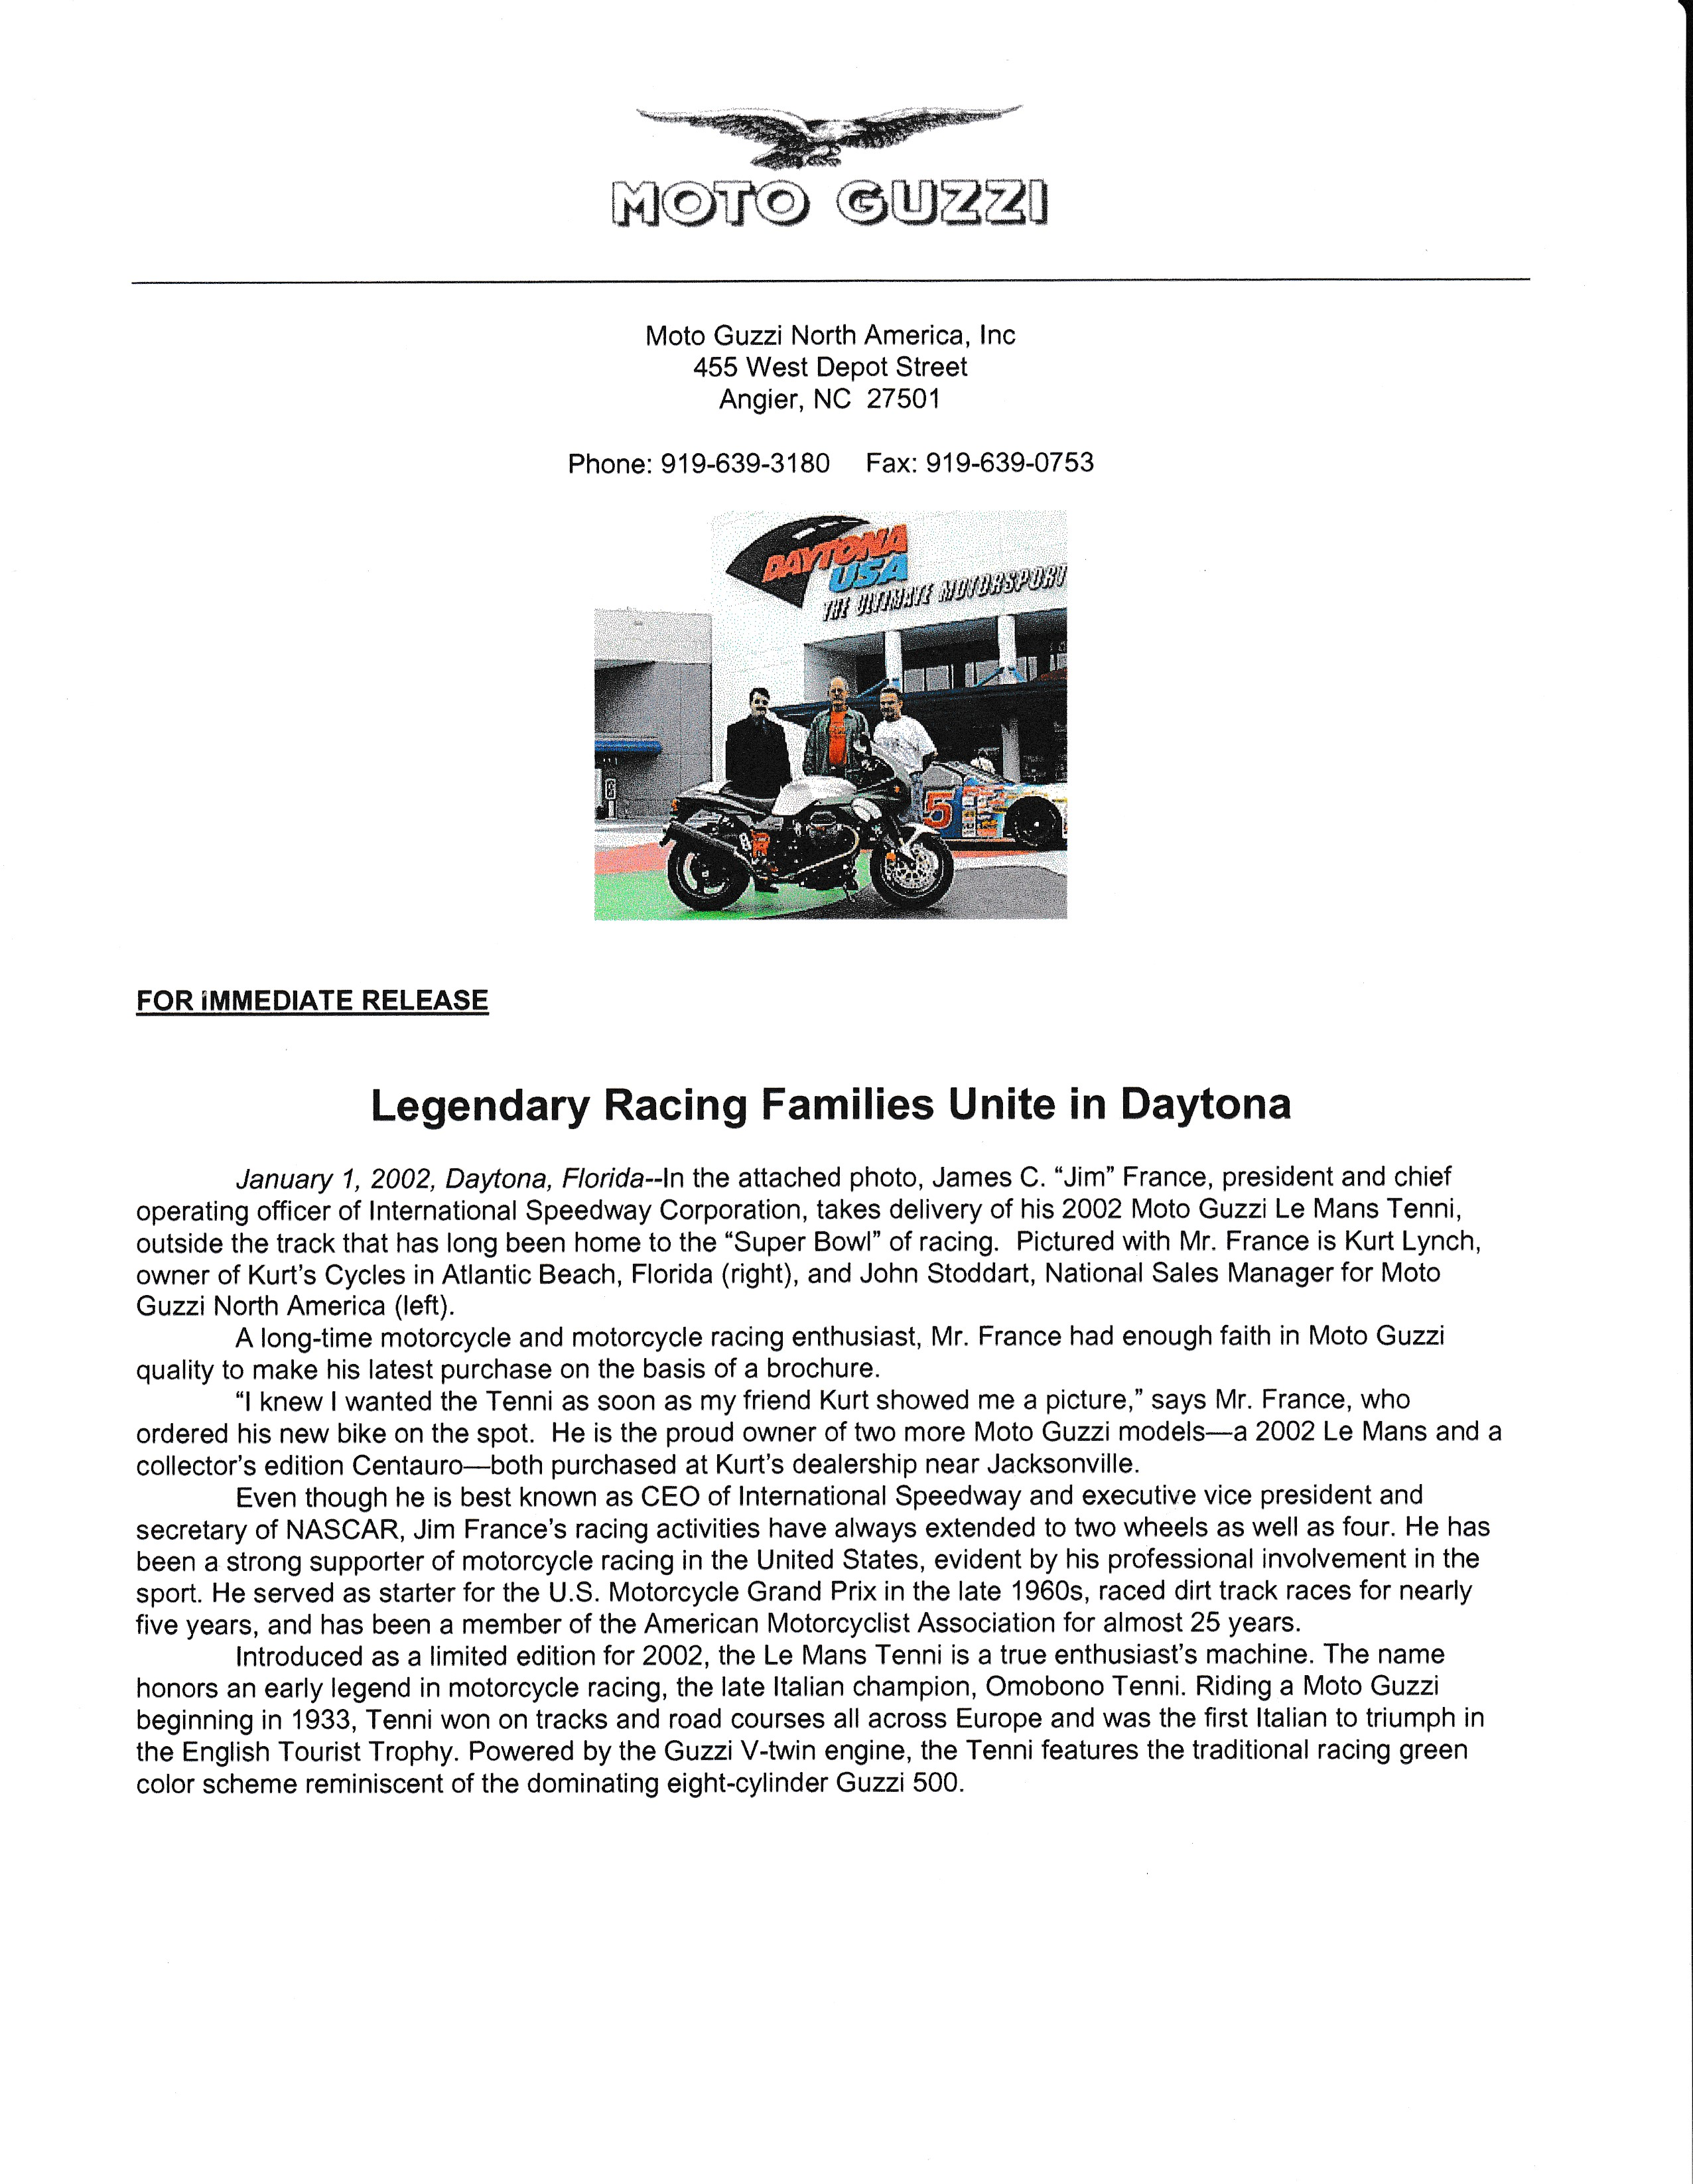 Press release - Legendary racing families unite in Daytona (2002 January 01)